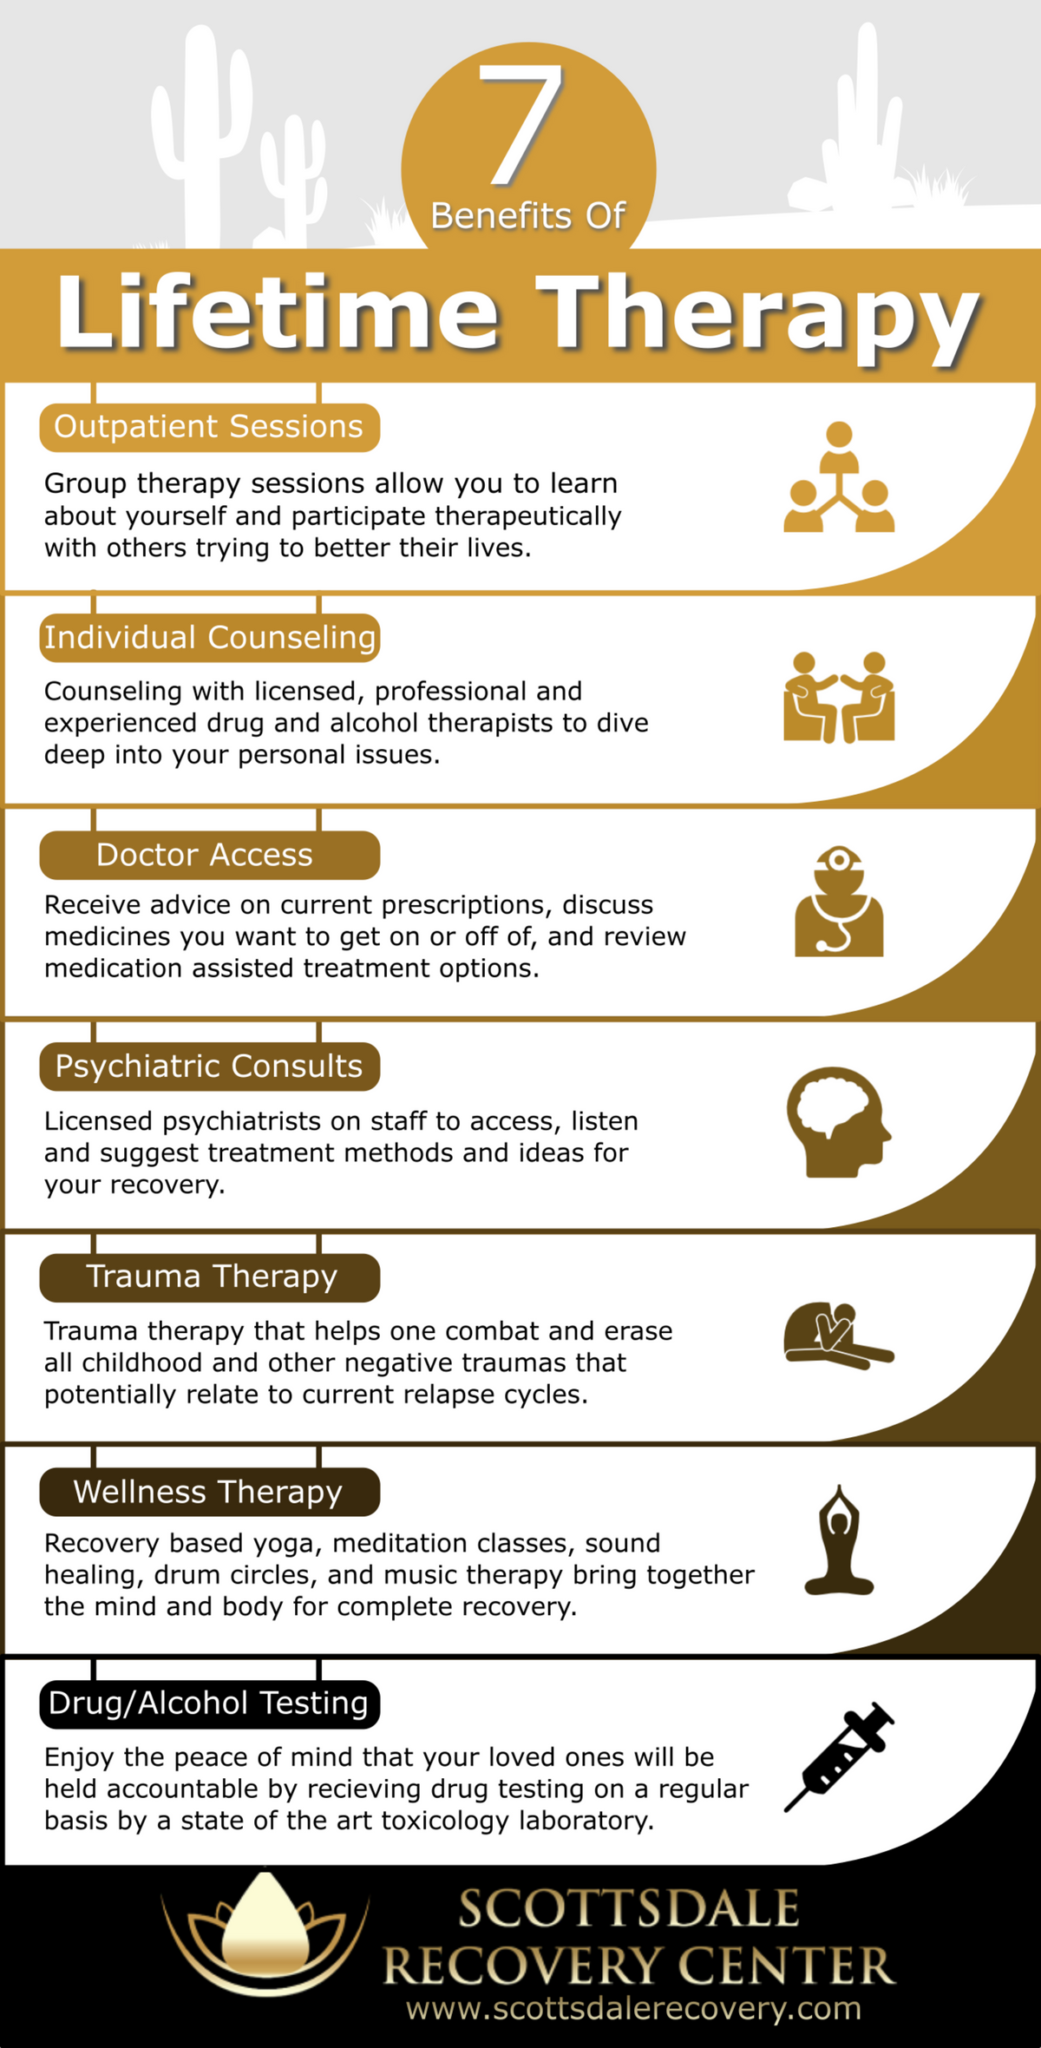 7 Benefits of Lifetime Therapy Infographic